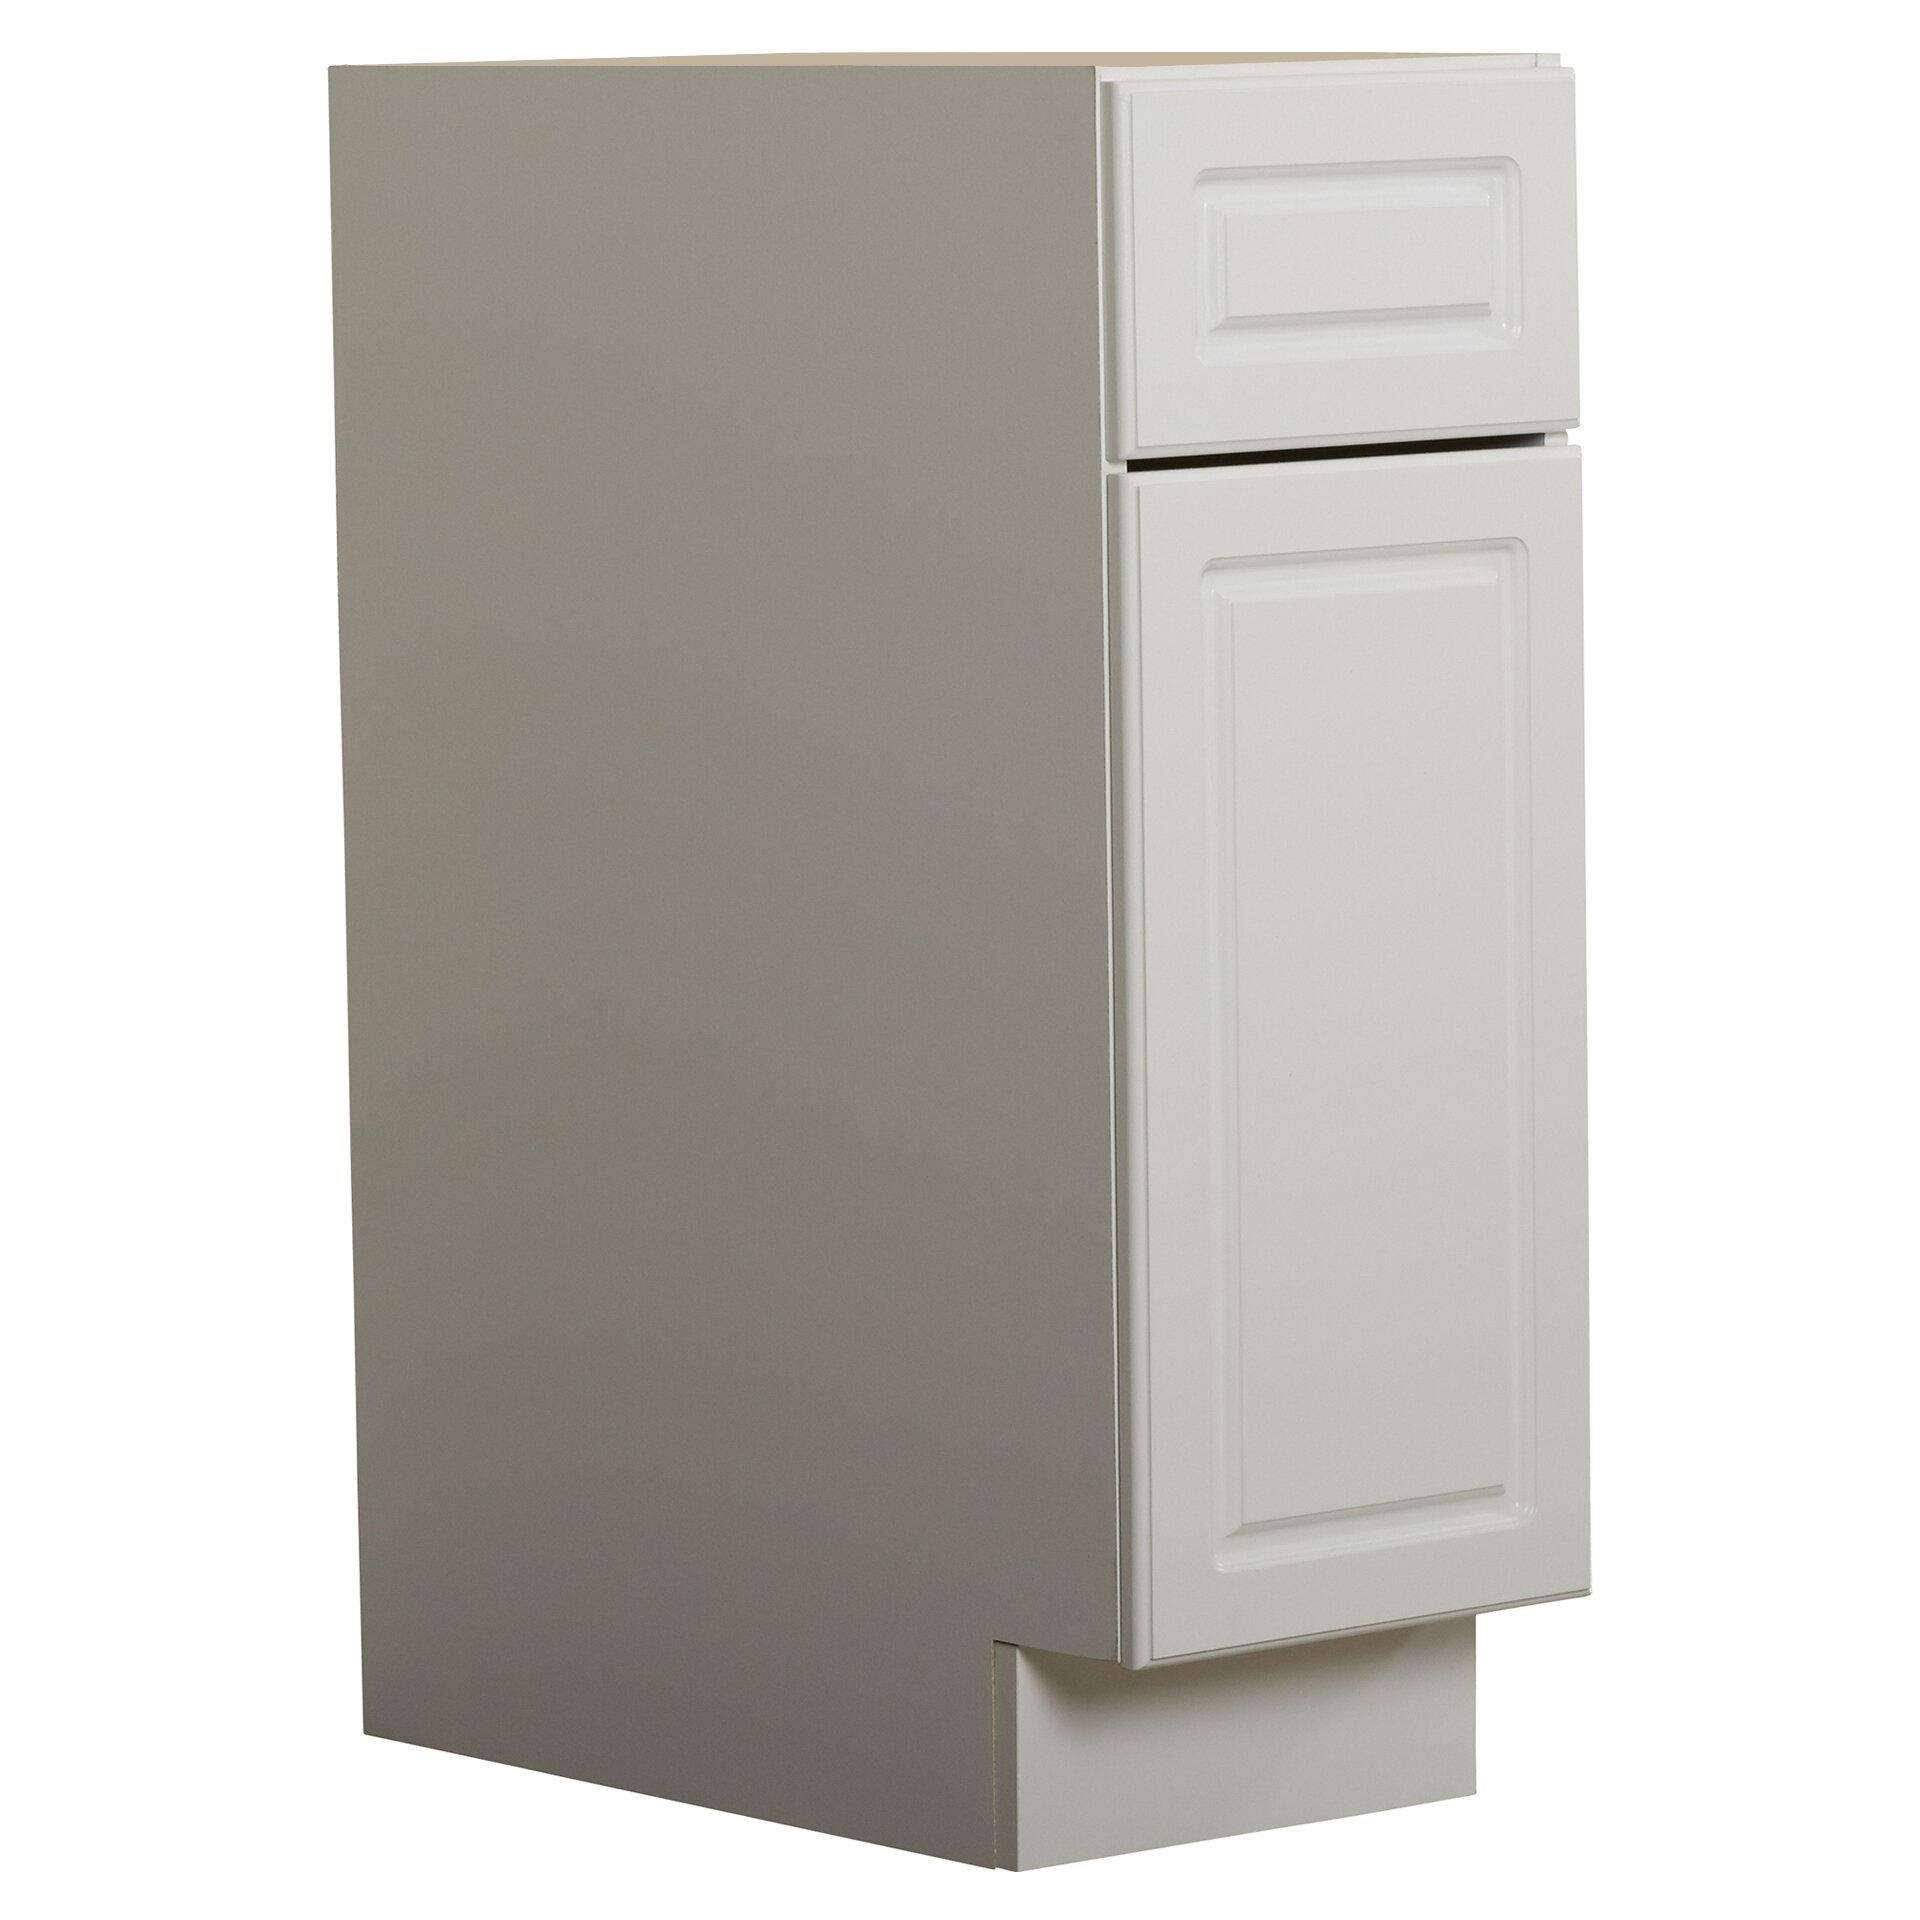 Altra keystone 12 1 drawer door base cabinet wayfair for One day doors and closets reviews